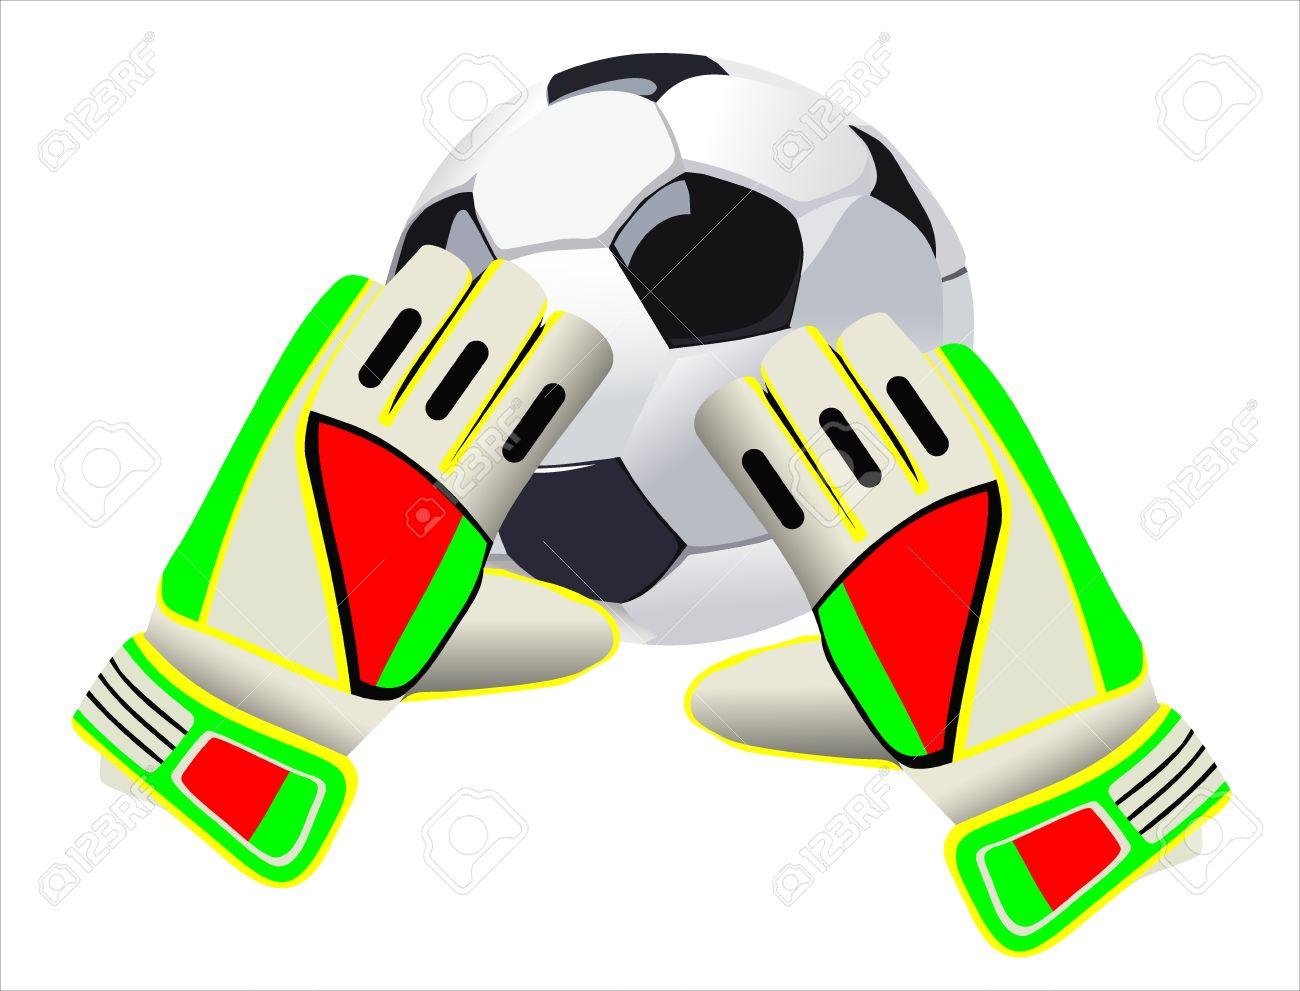 Soccer Goalkeeper Gloves And A Ball Royalty Free Cliparts Vectors And Stock Illustration Image 25156126